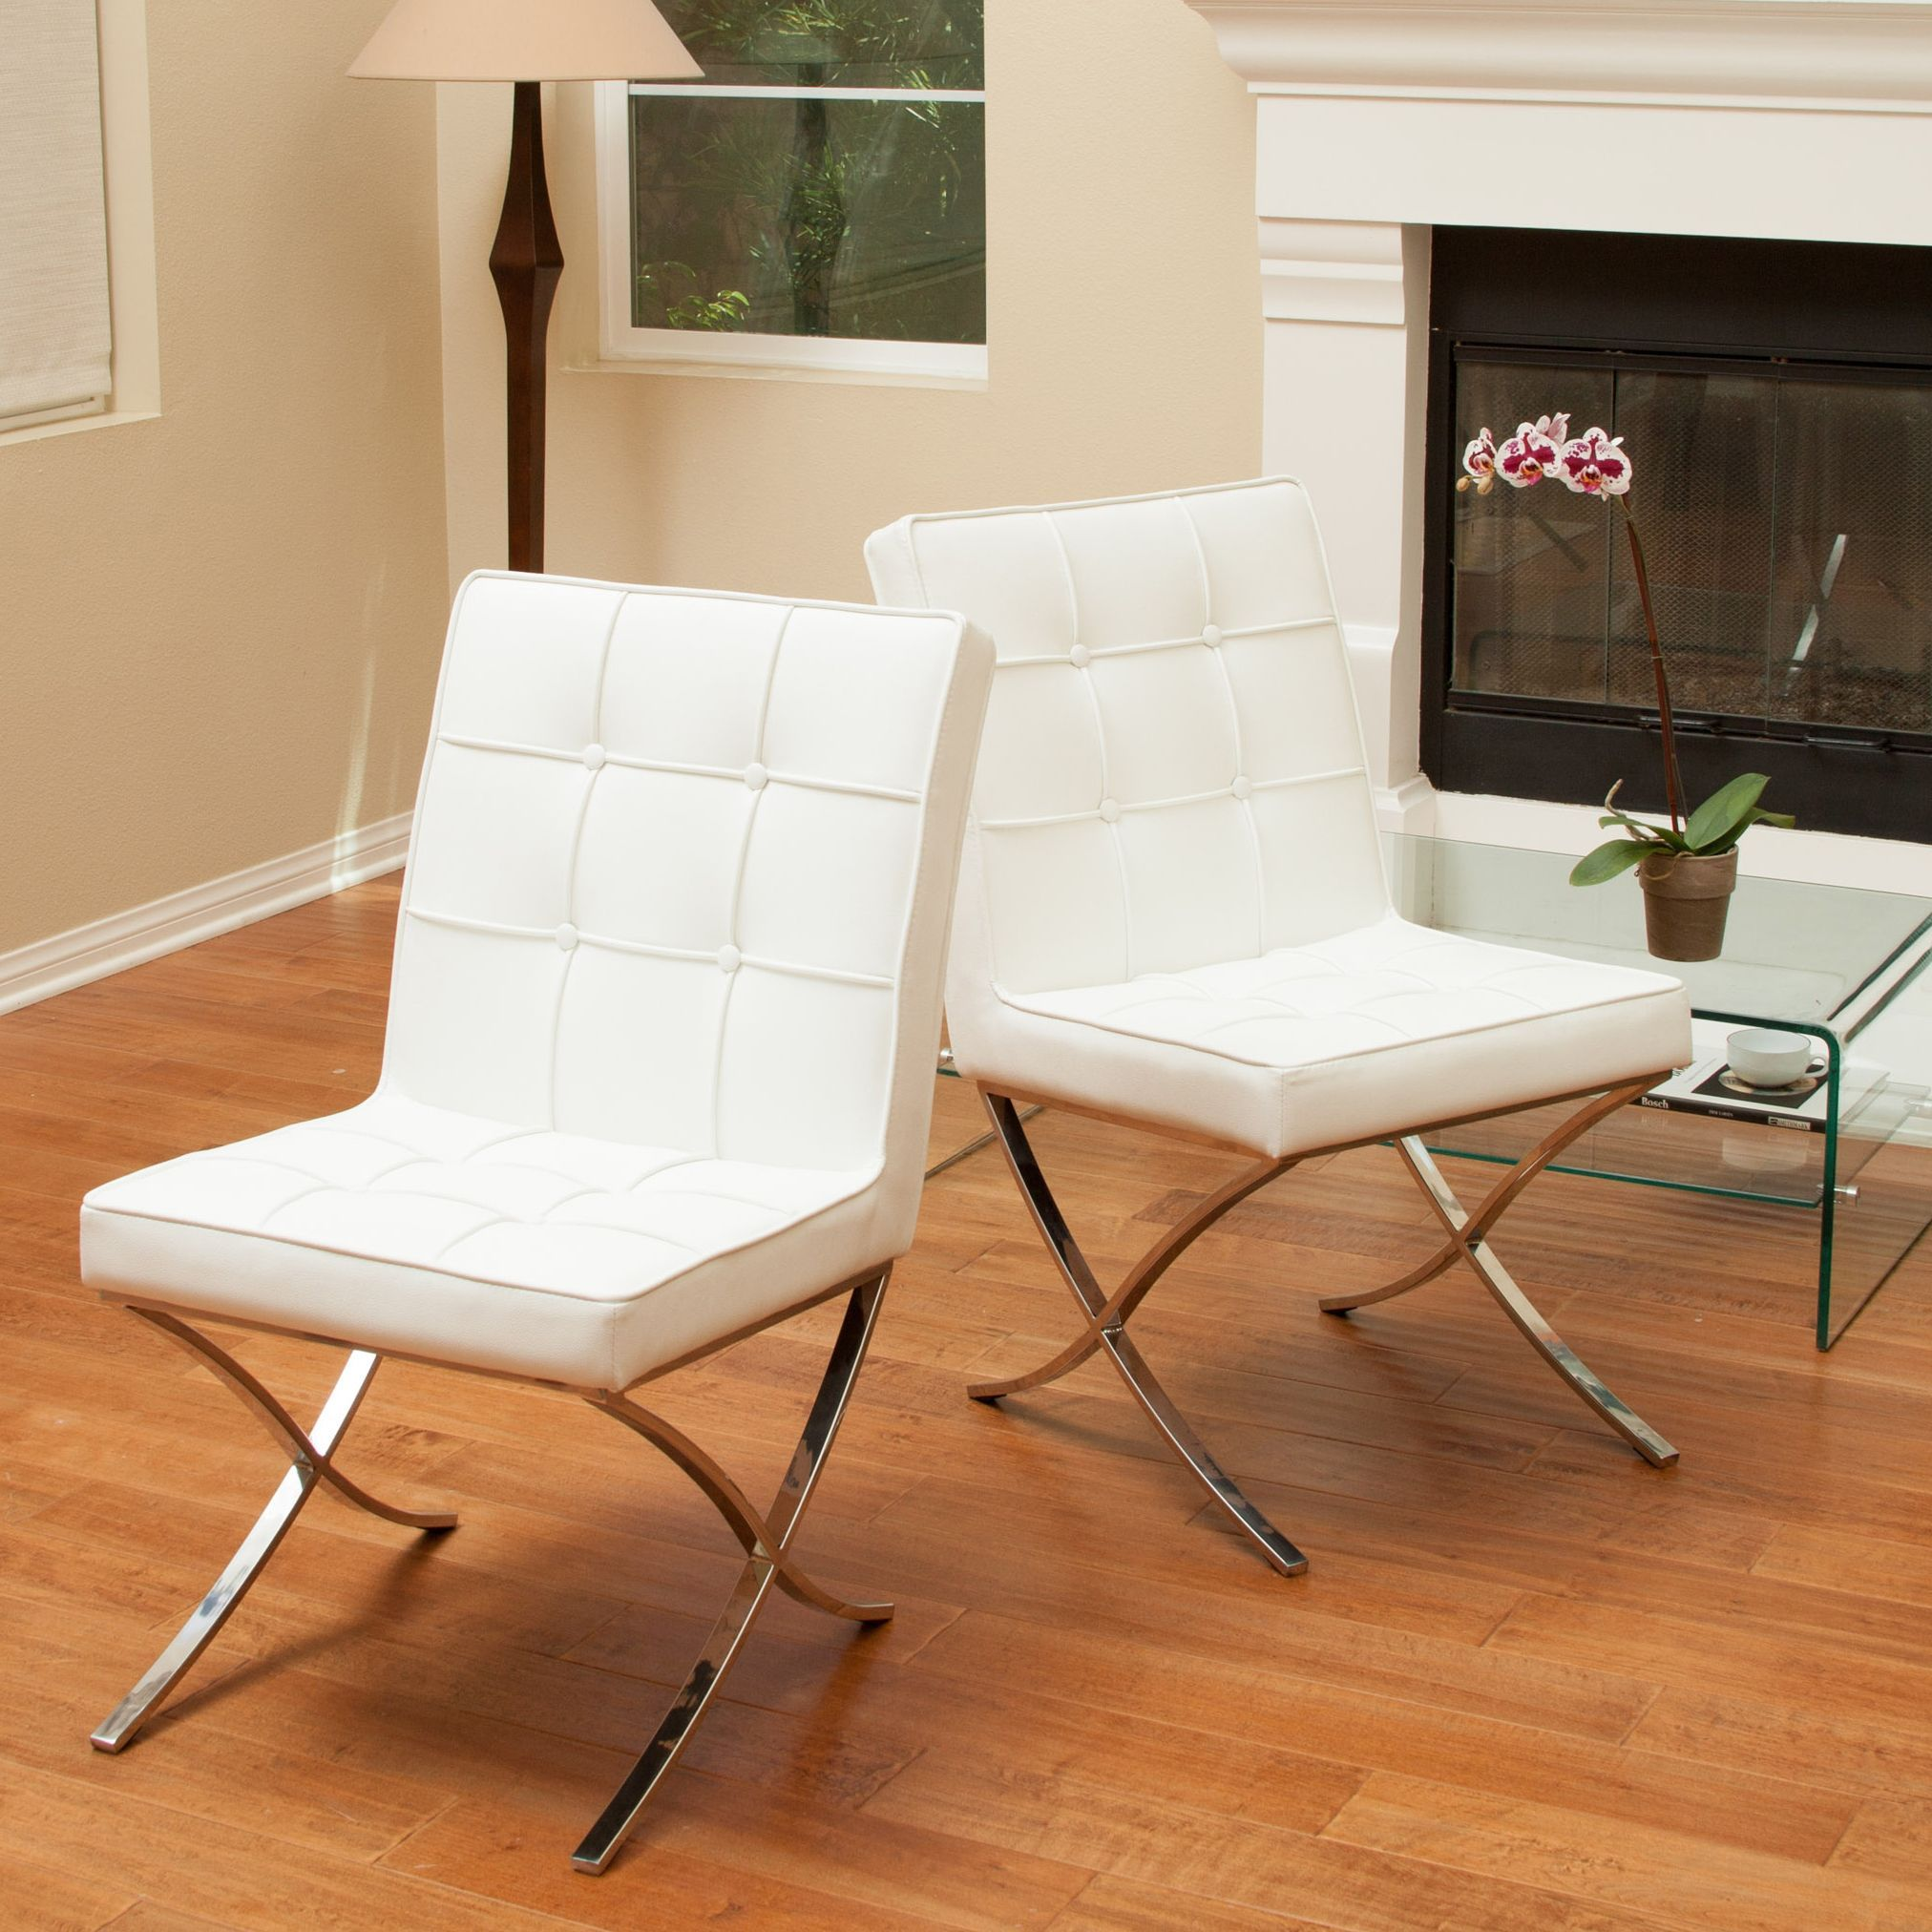 Christopher Knight Home Milania White Leather Dining Chairs (Set Of 2)    Overstock Shopping